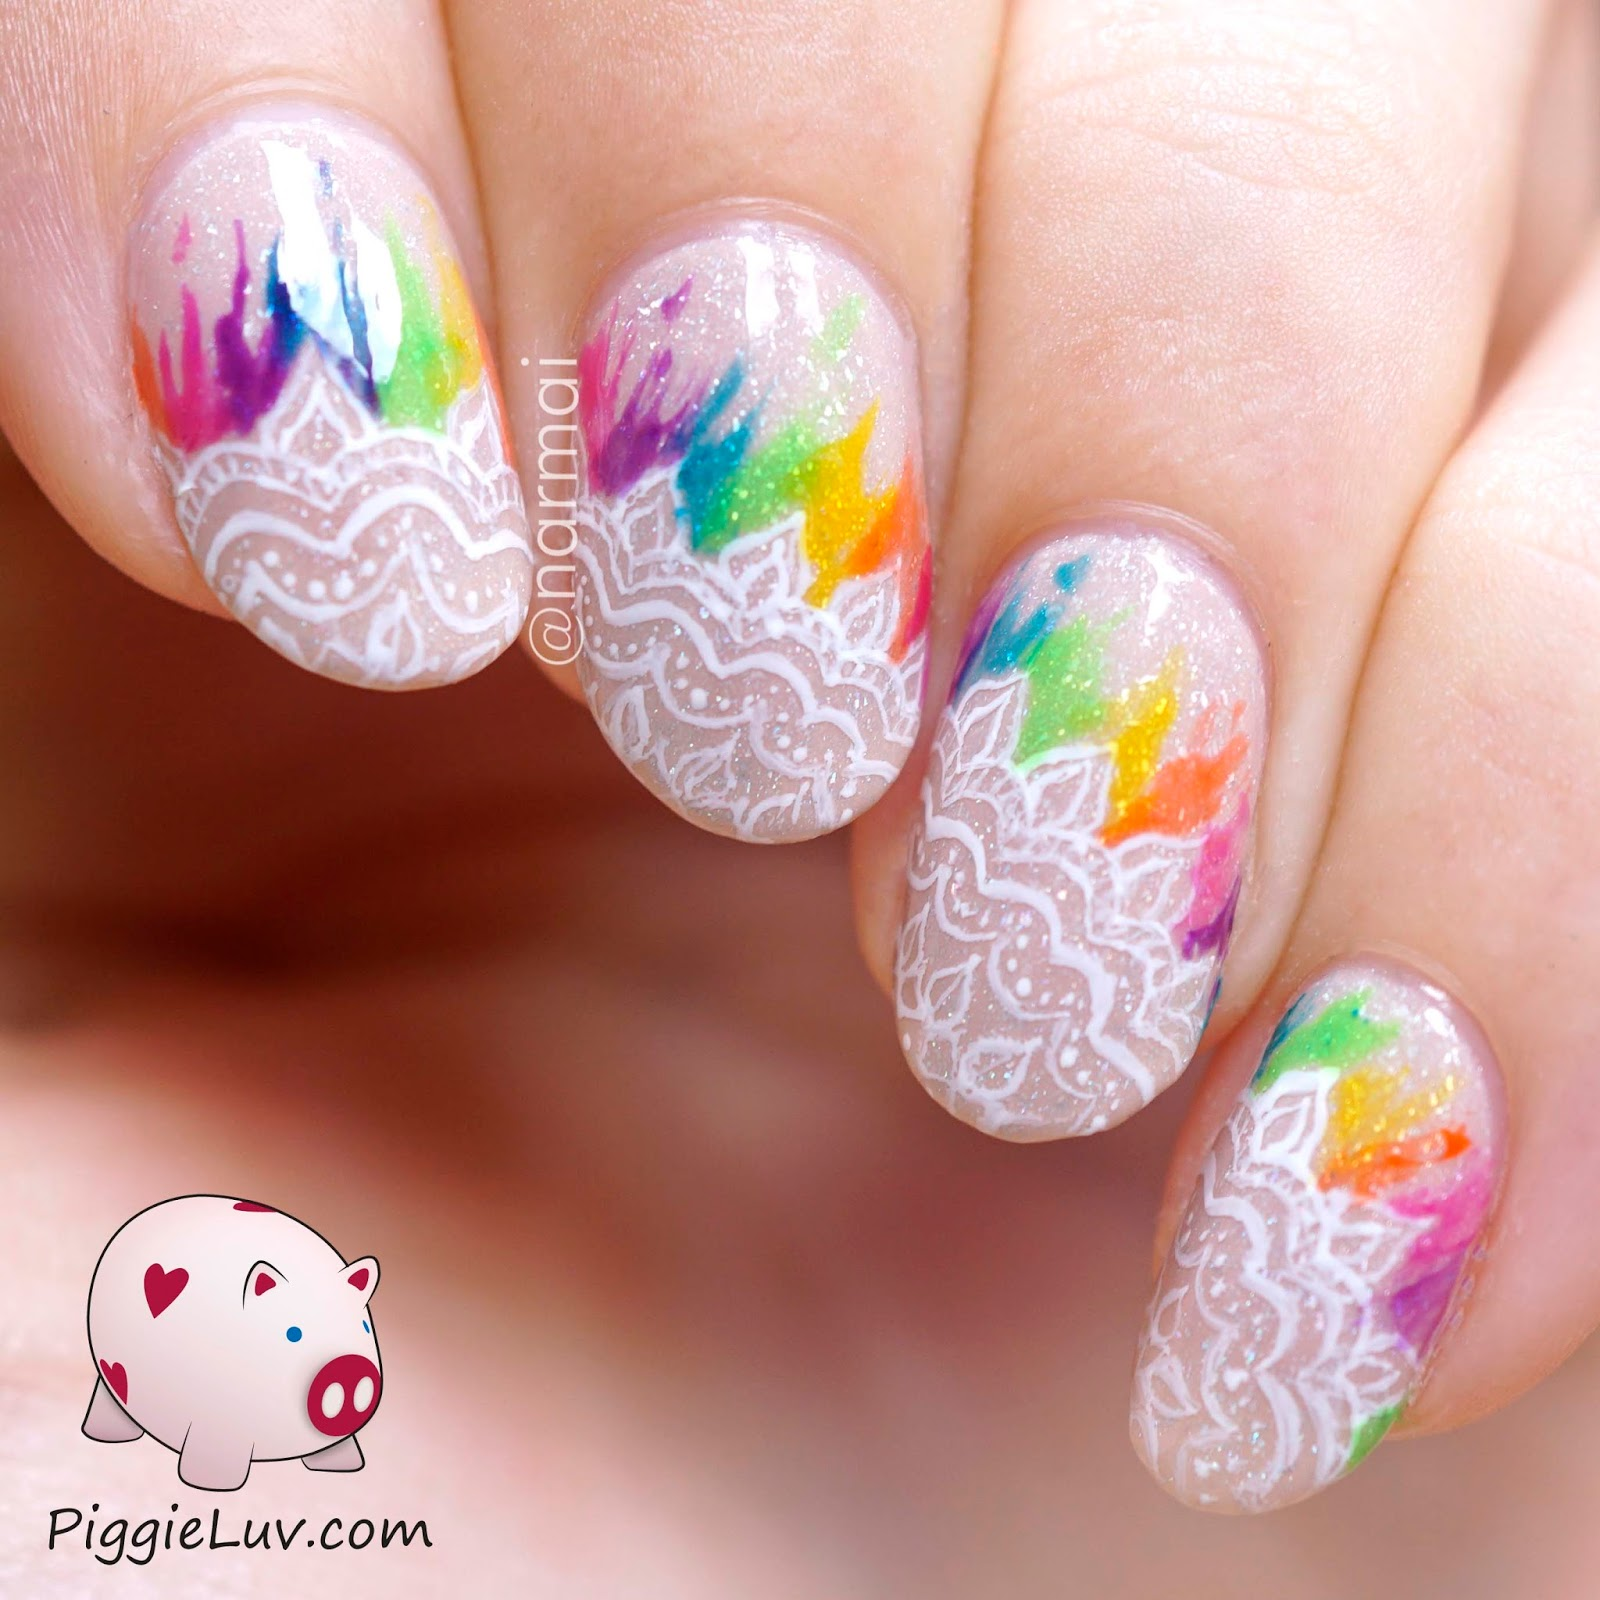 PiggieLuv: Rainbow lace bridal style nail art with OPI ...